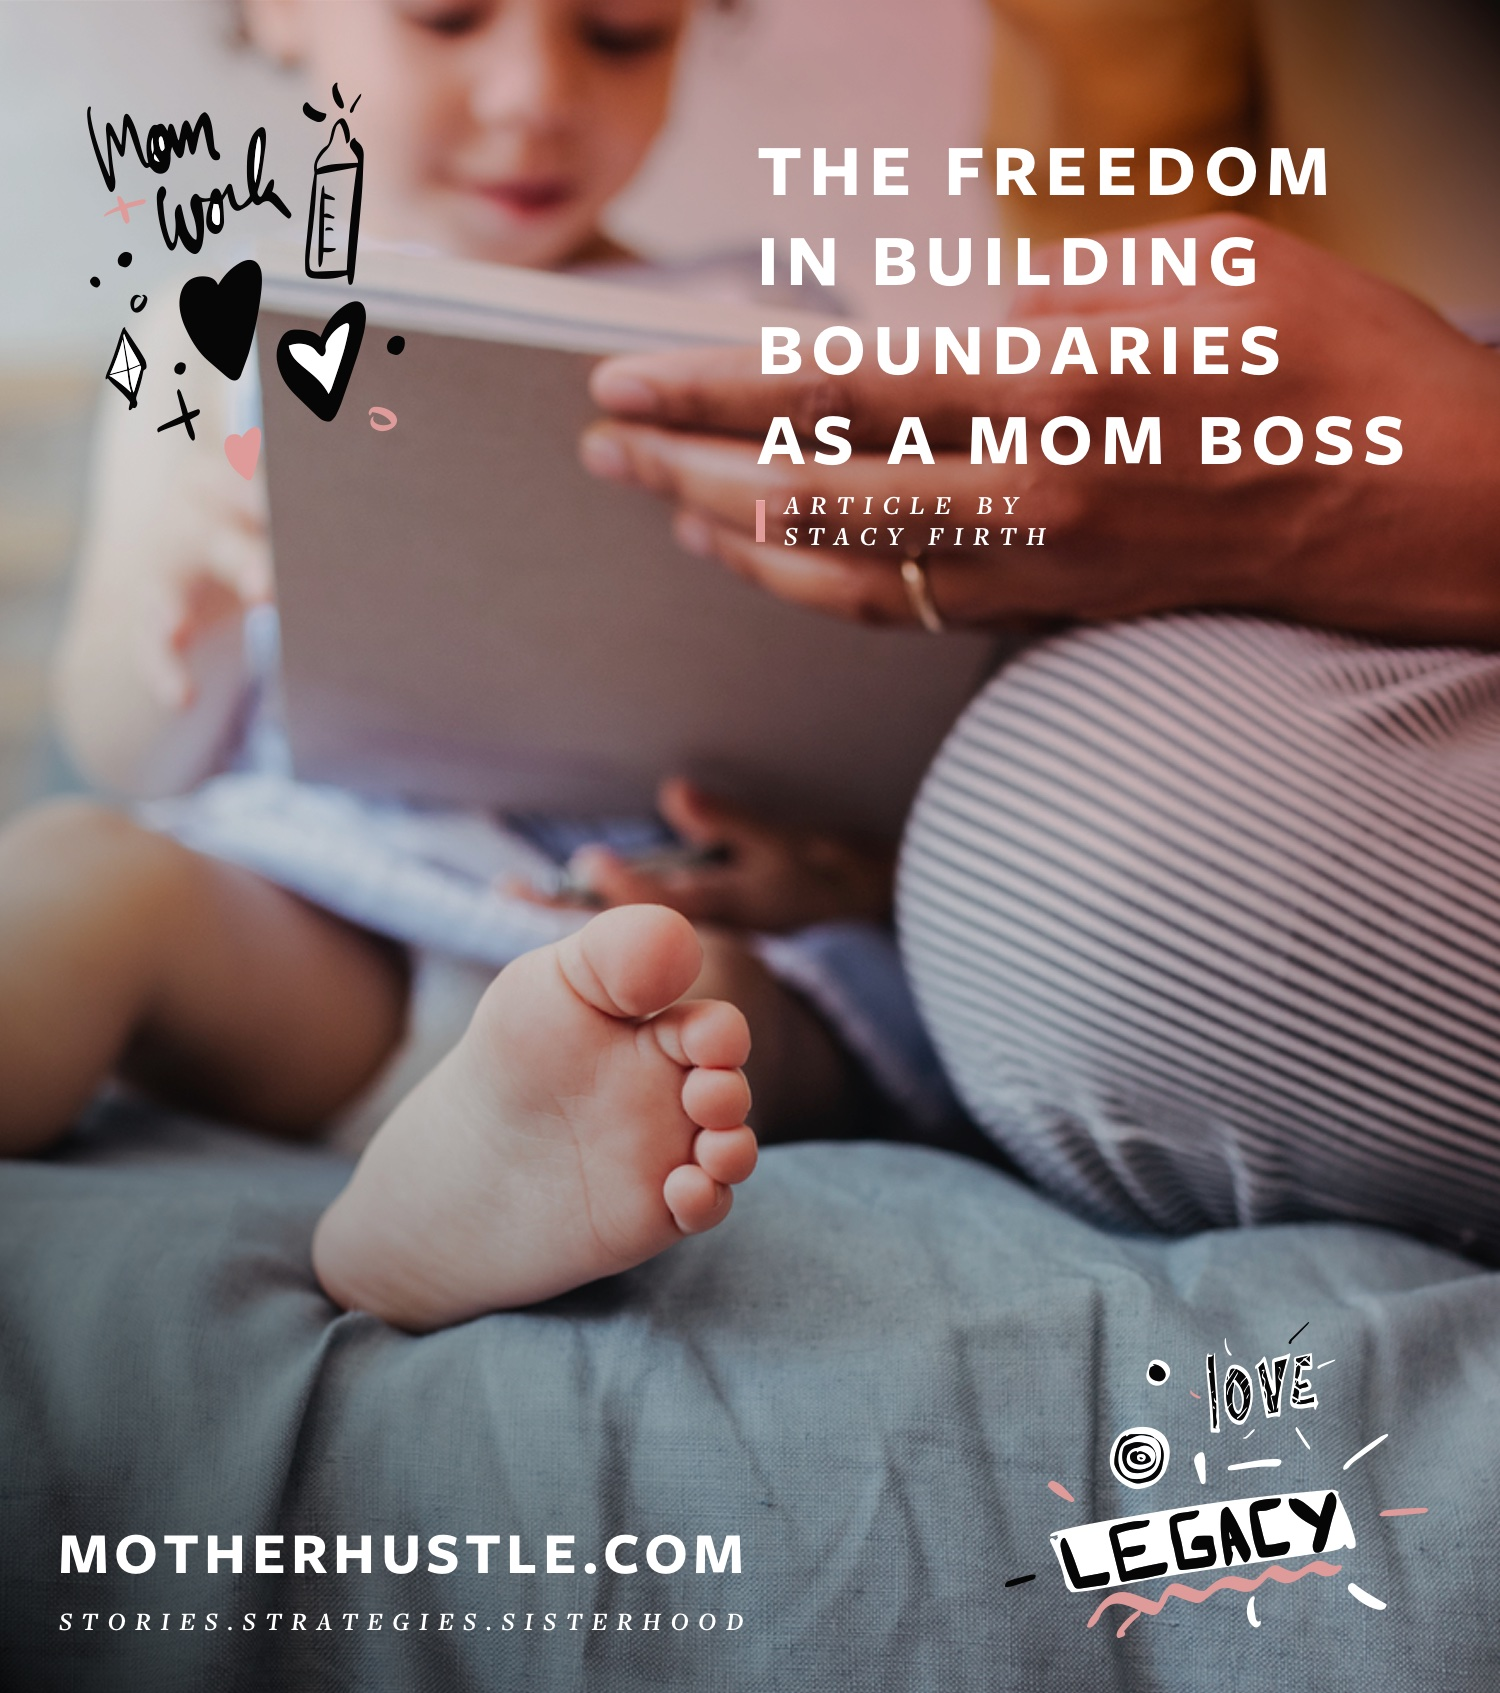 The Freedom in Building Boundaries as a Mom Boss - by Stacy Firth for MotherHustle